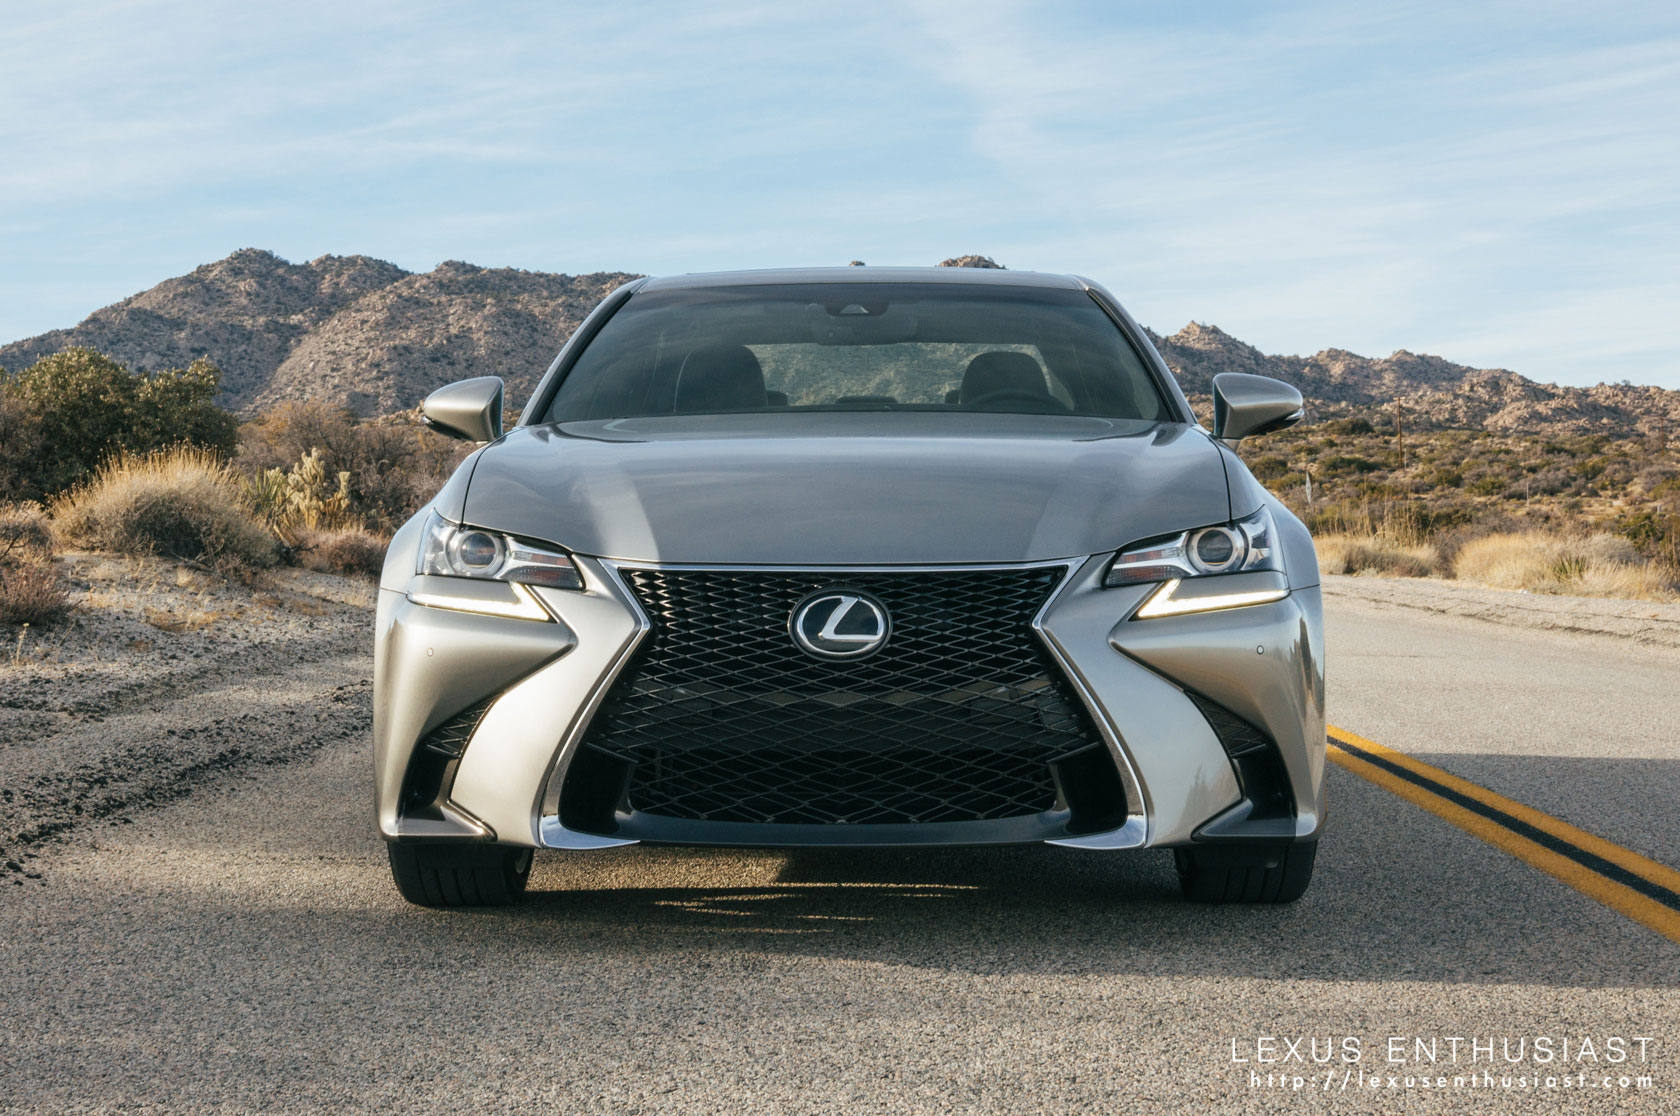 review the 2016 lexus gs 200t f sport ken shaw lexus. Black Bedroom Furniture Sets. Home Design Ideas